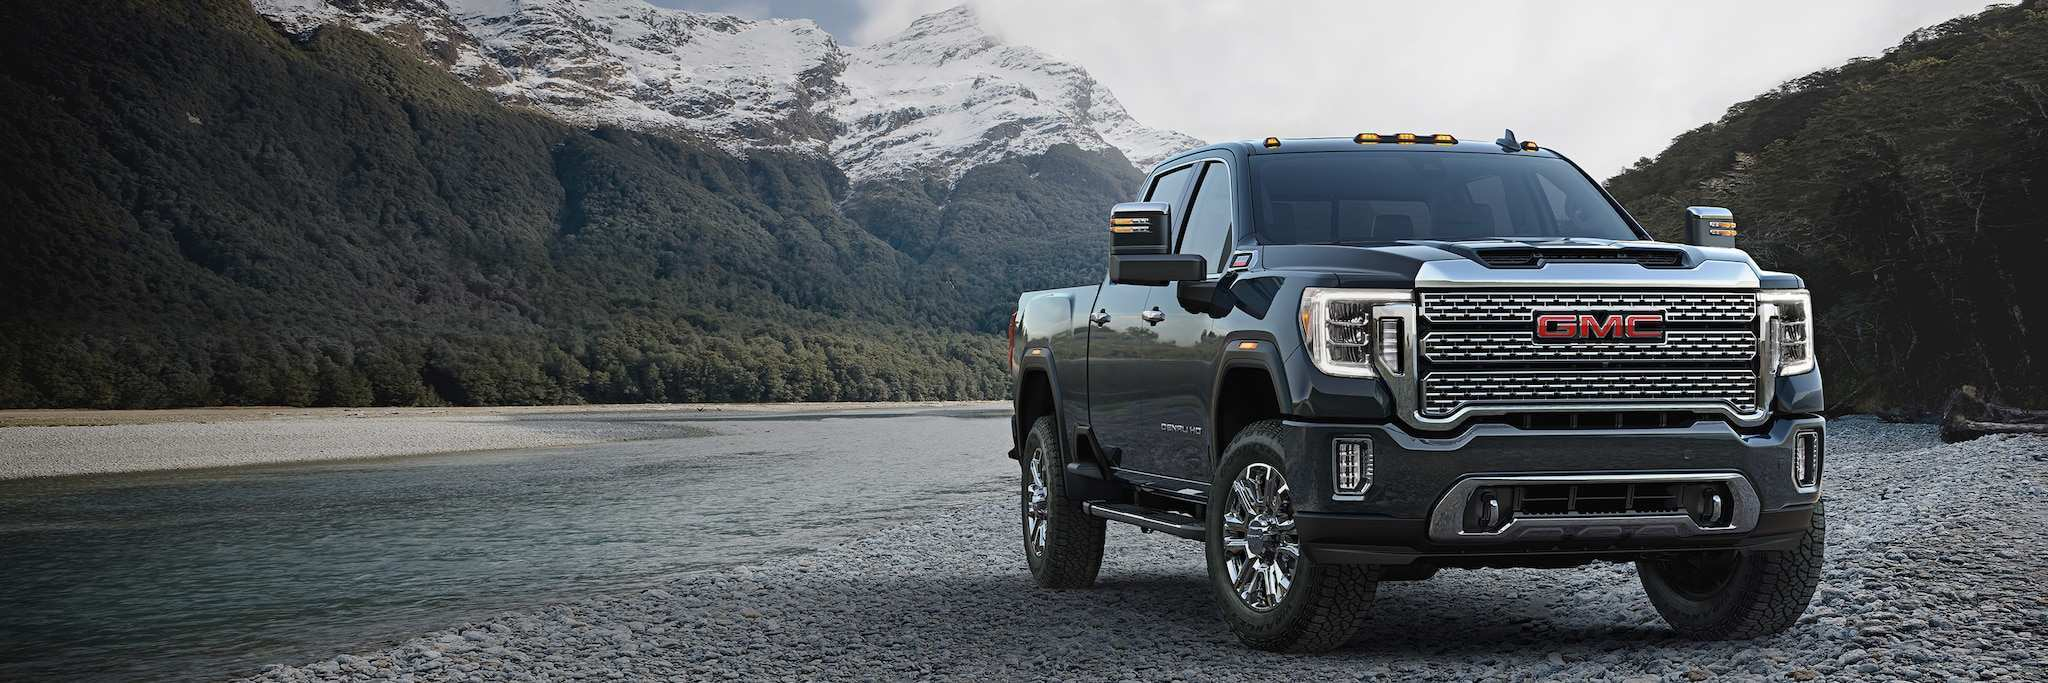 70 All New 2020 Gmc 2500 Lifted Release Date And Concept